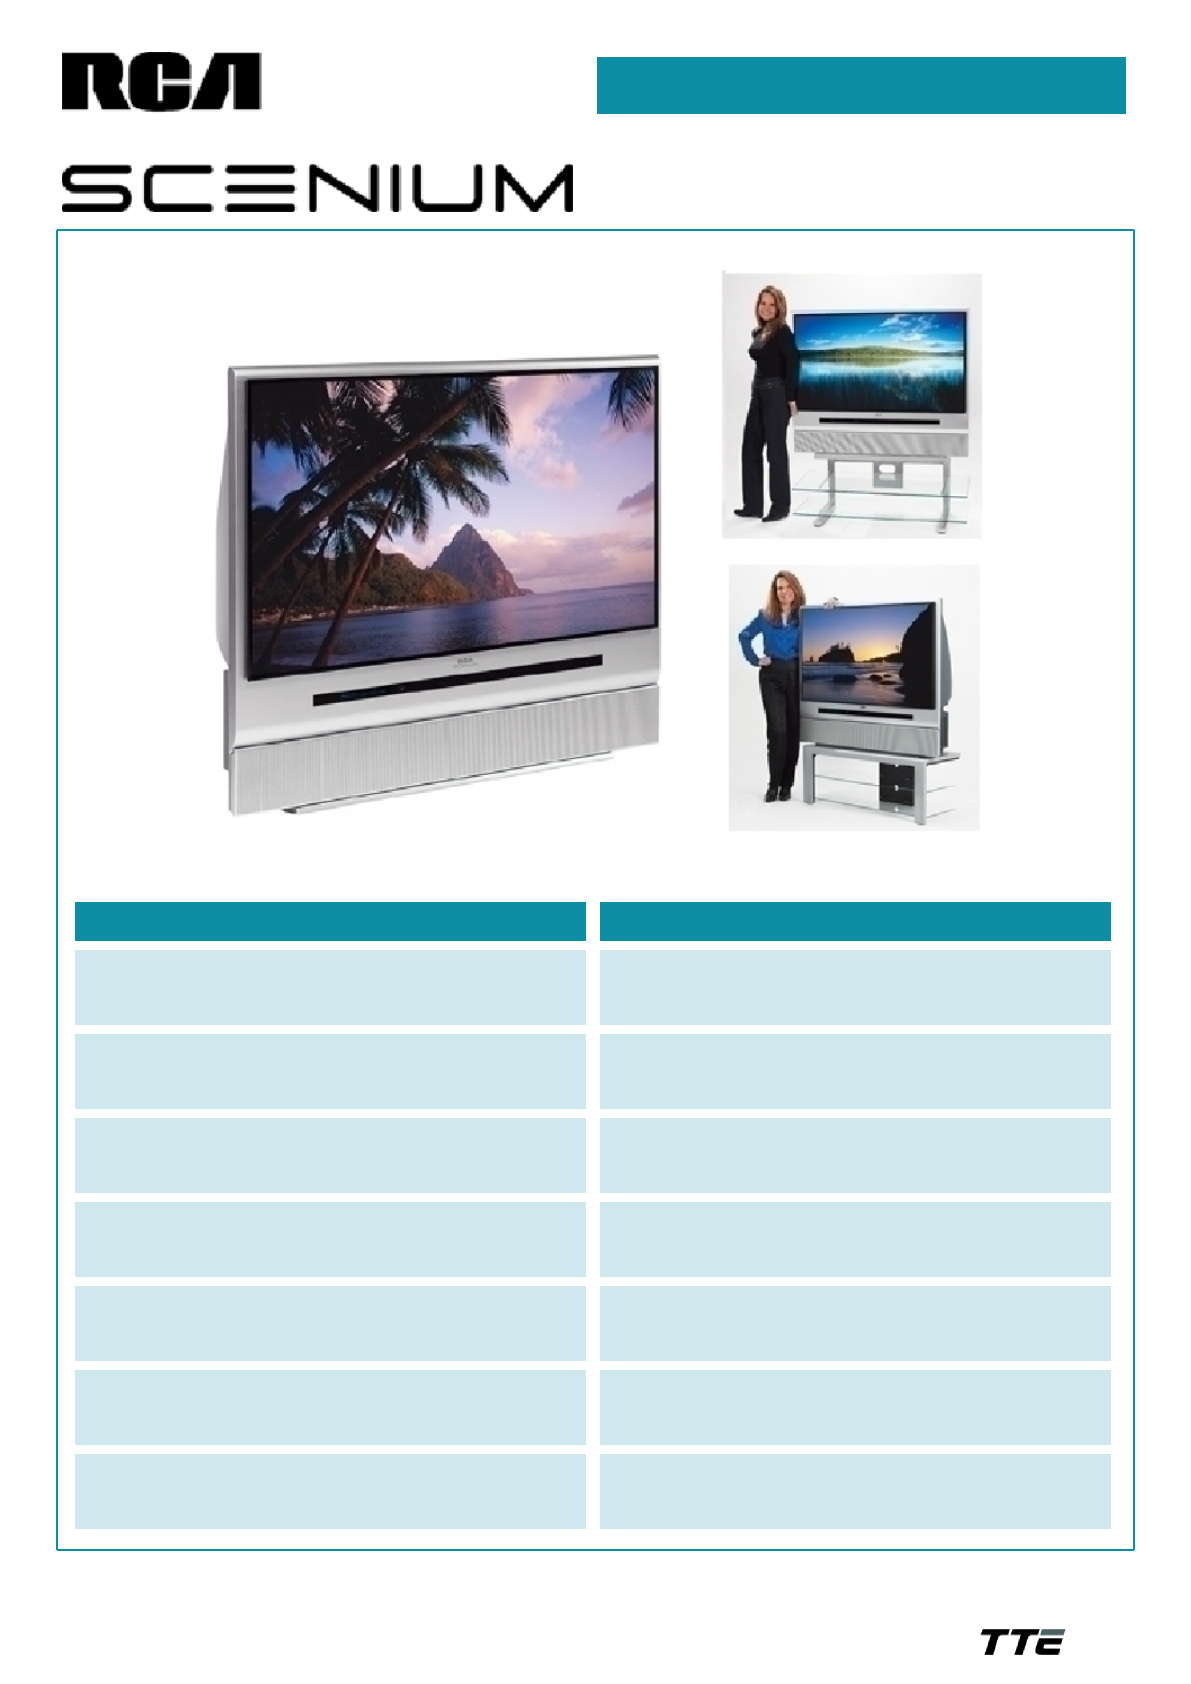 rca projection television hd50lpw165 user guide manualsonline com rh tv manualsonline com 50 RCA DLP TV 61 RCA DLP